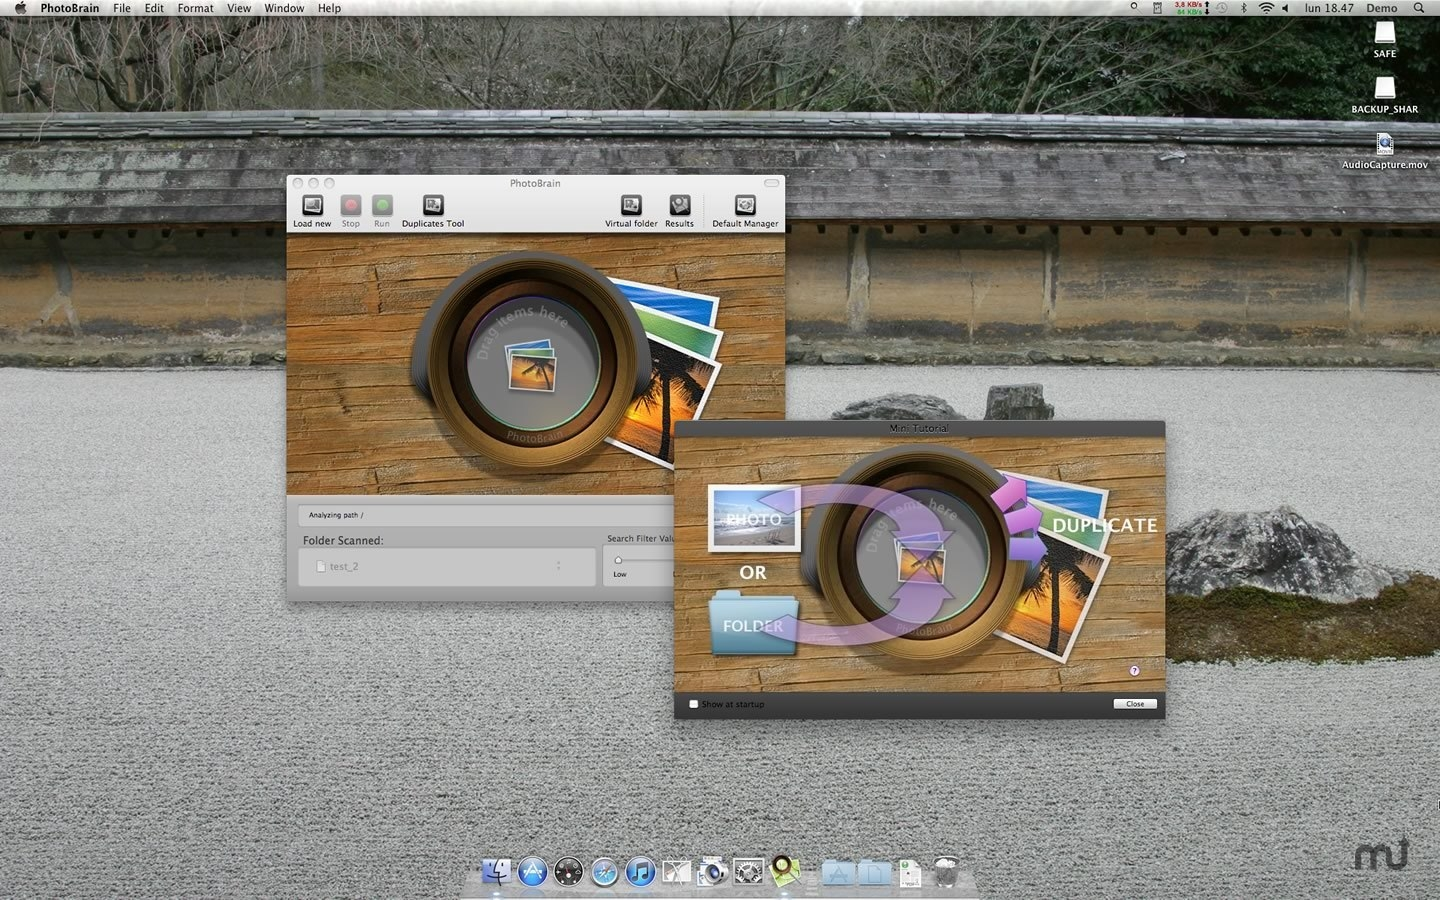 Screenshot 1 for PhotoBrain